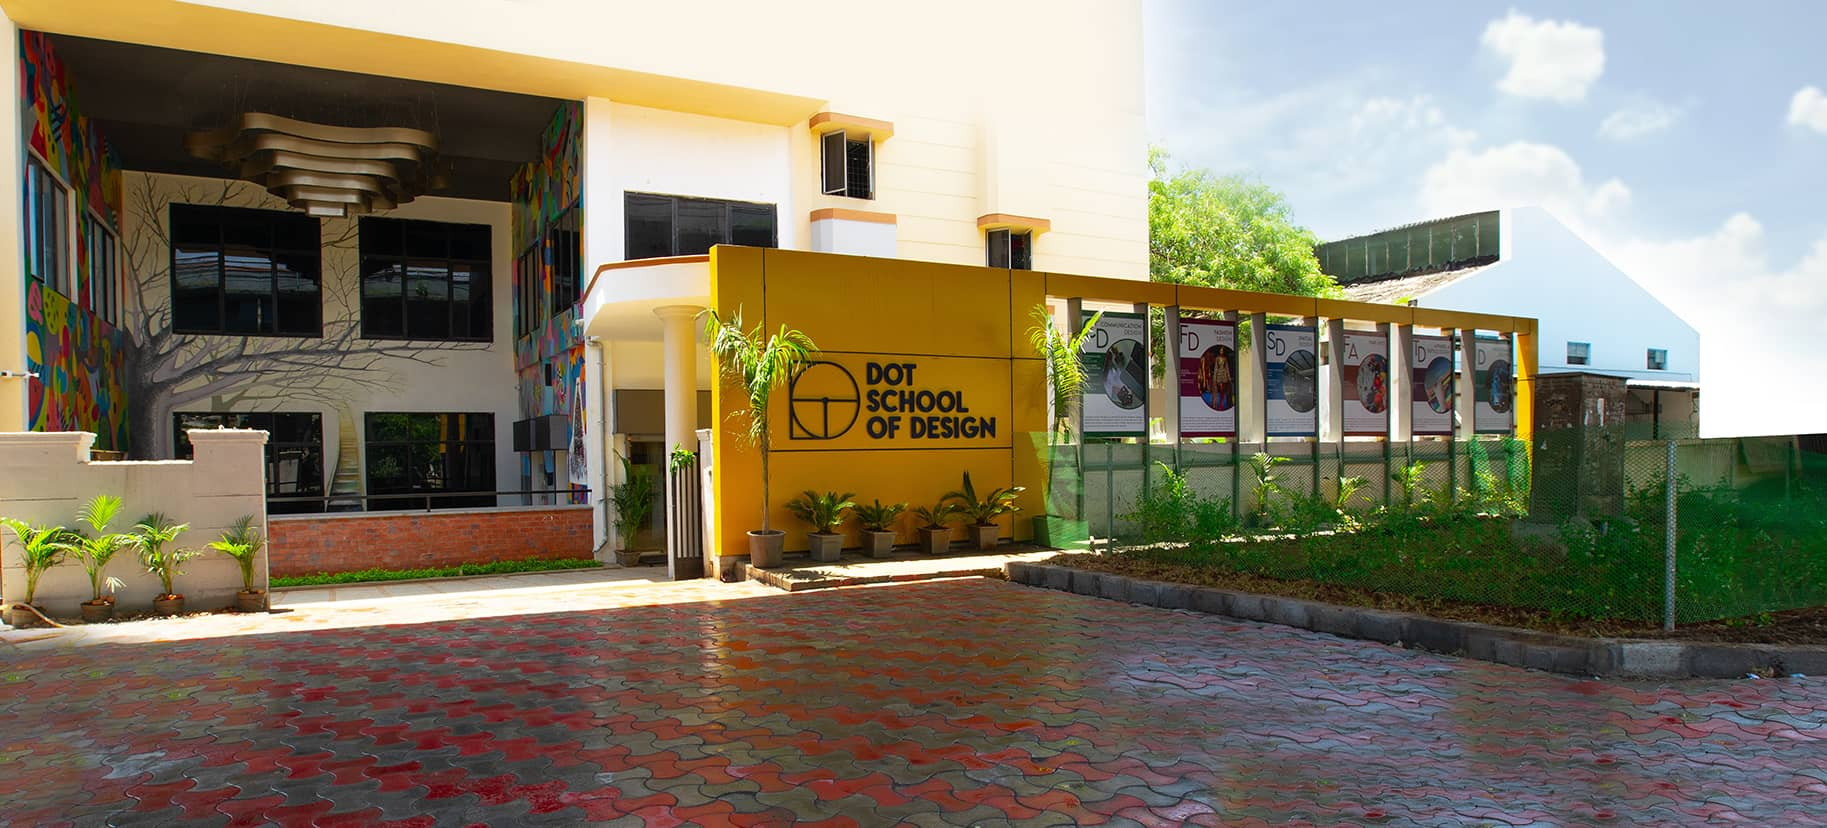 Main entrance of one of the best design colleges in India